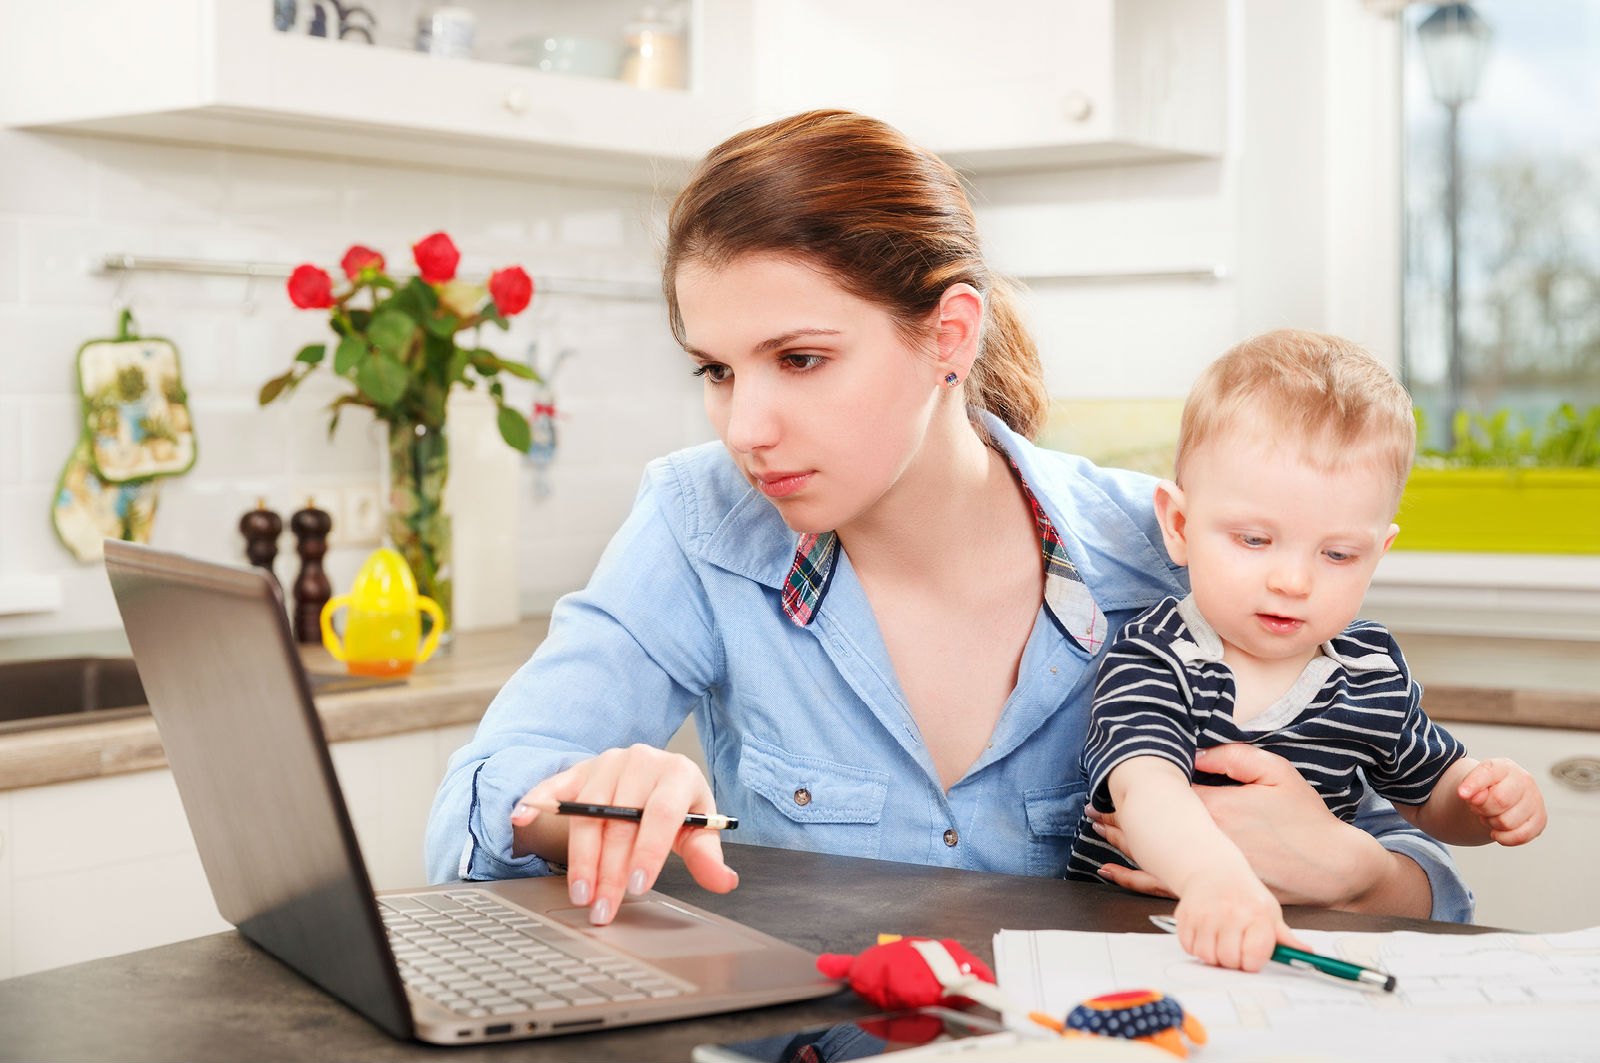 Three Viable Side Hustles For Stay-At-Home Parents